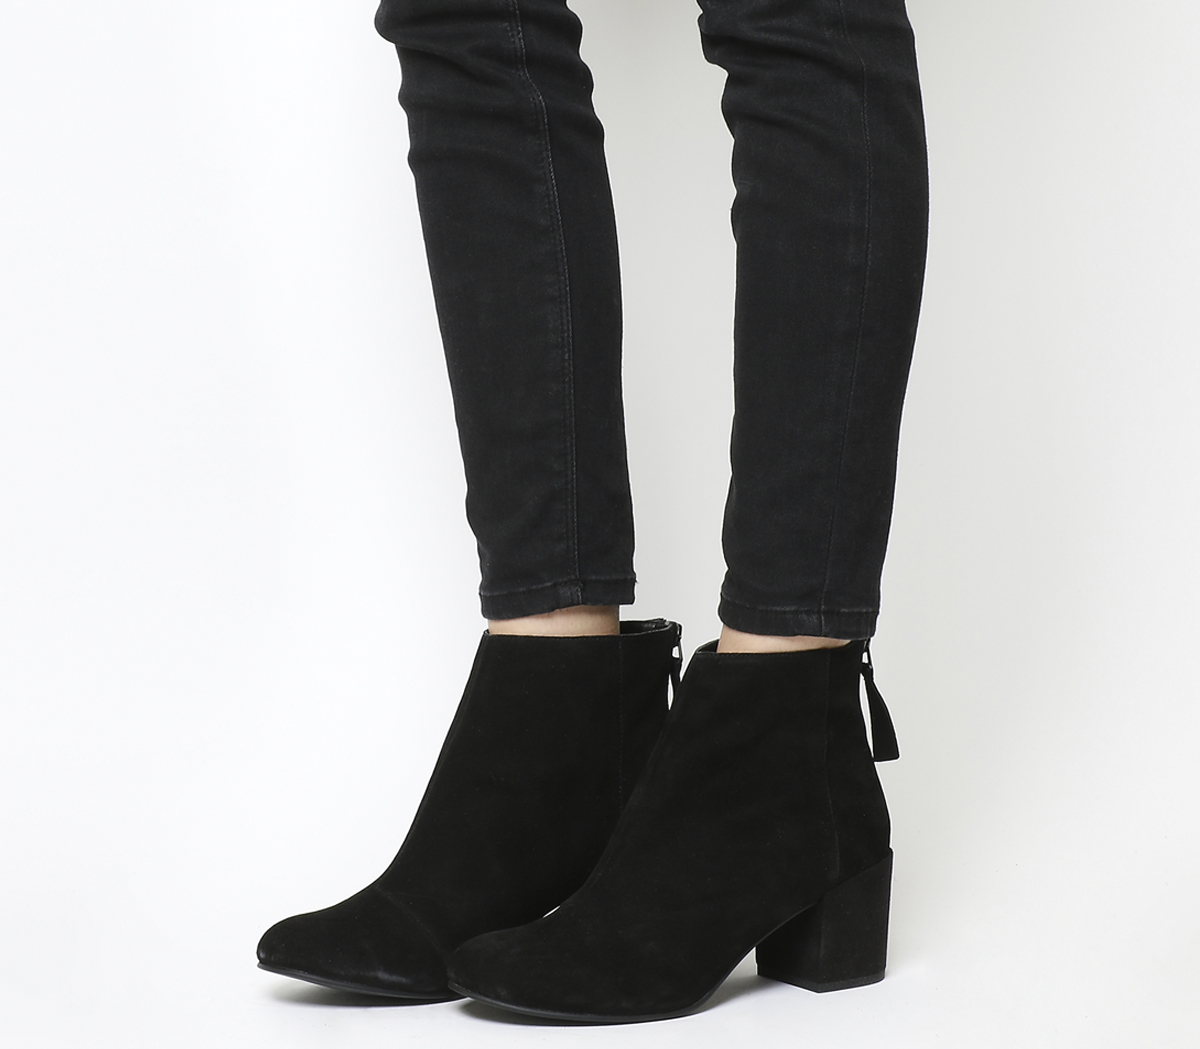 663dae053b0d7 Sentinel Womens Office Black Suede Zip Ankle Boots Size UK 5  Ex-Display